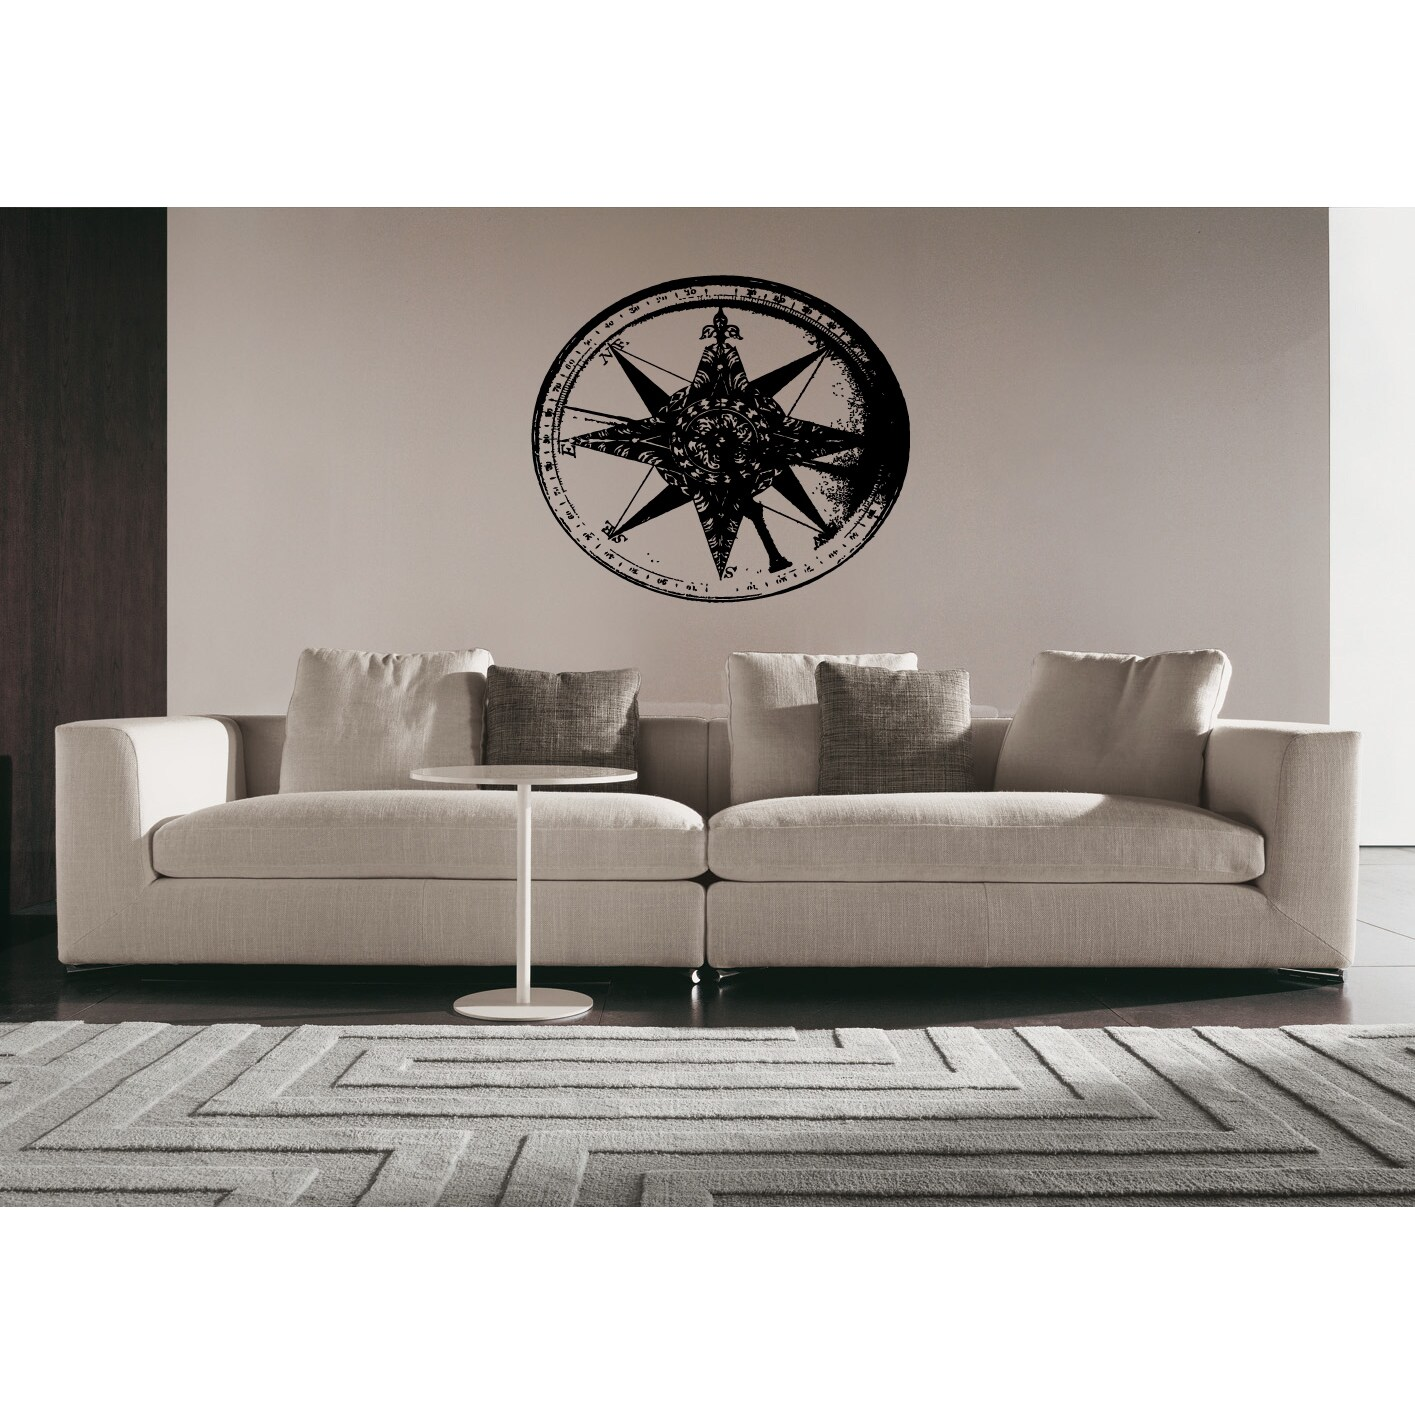 Amazon Com Digtour Wallart Compass Wall Decal Vinyl Compass Wall Sticker Compass Rose Wall Decal Wall Graphic Wall Mural Home Art Wall Decoration A Brown Home Kitchen